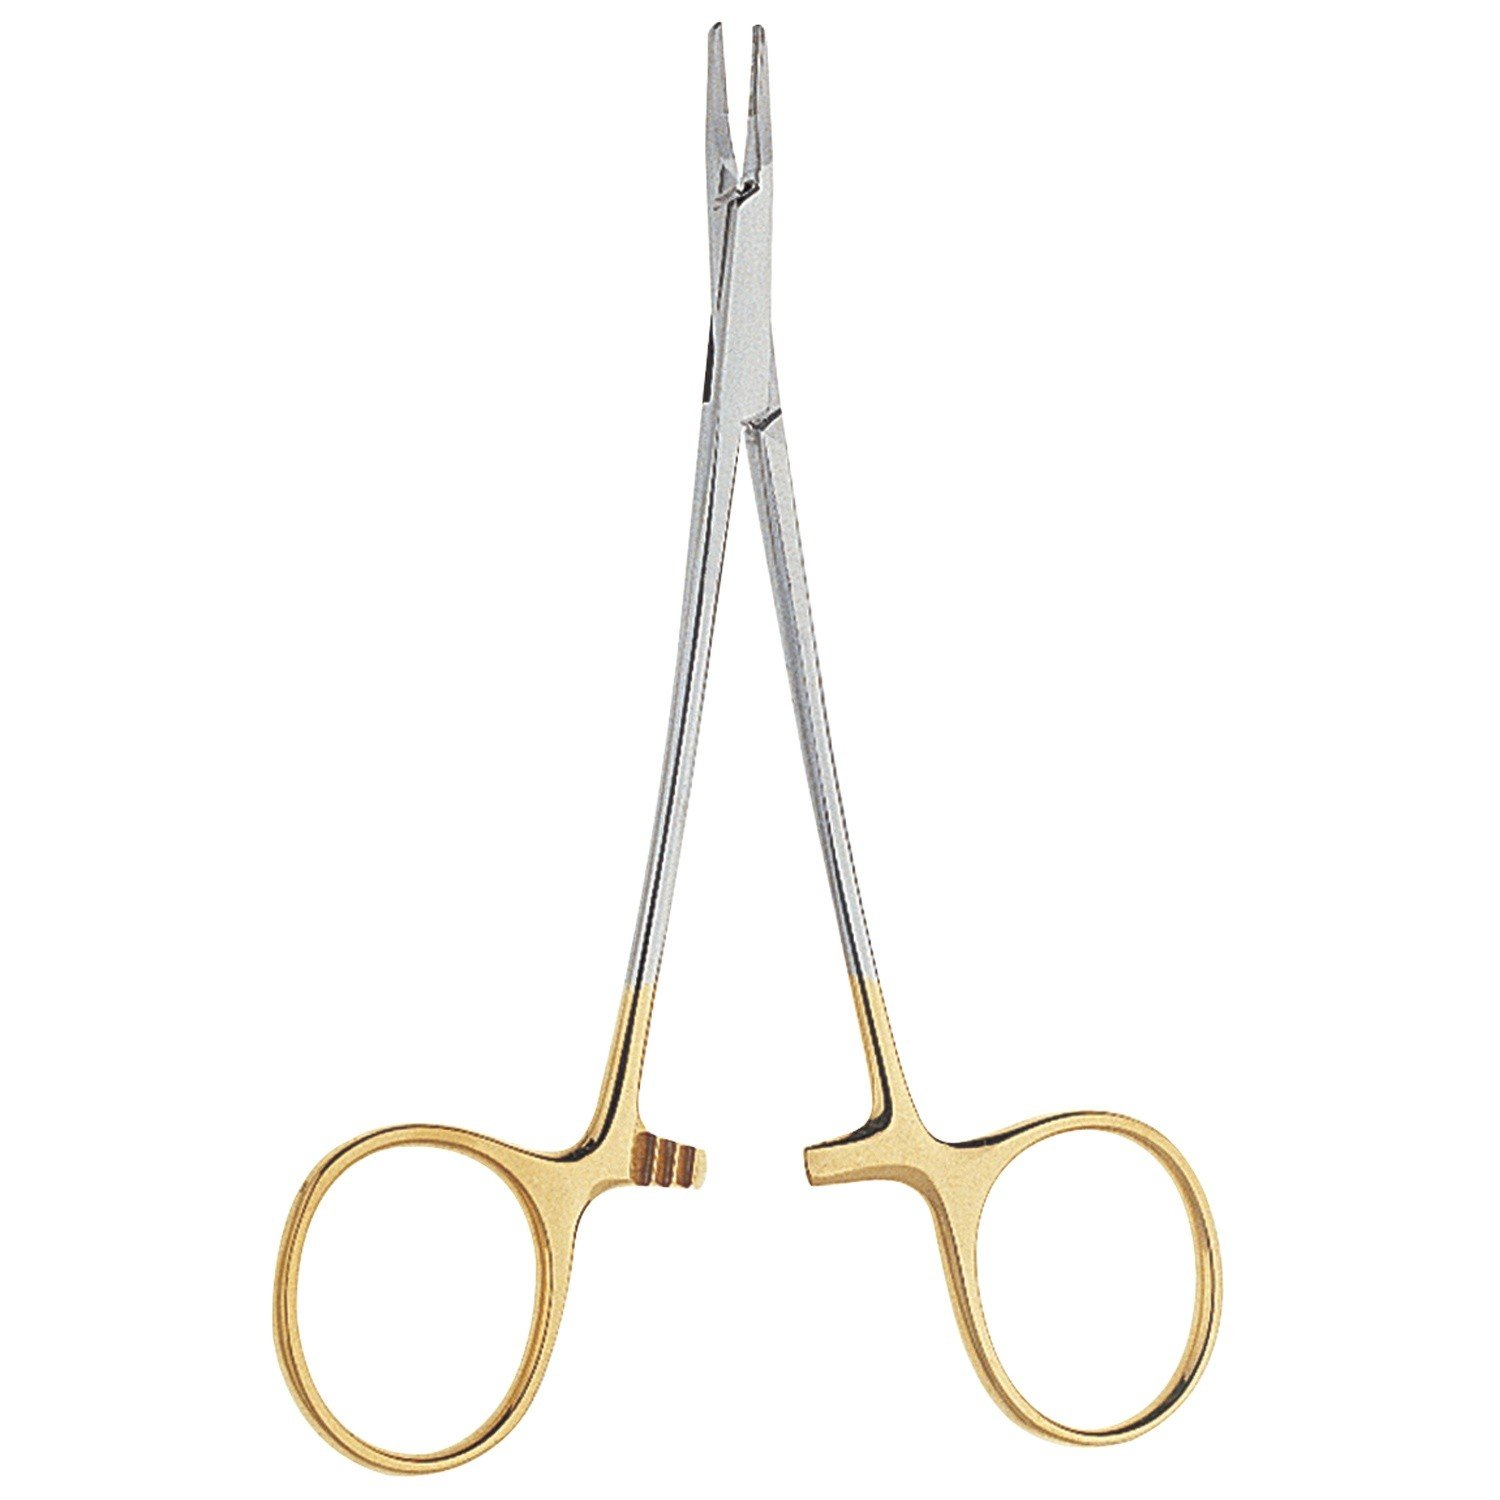 V. Mueller CH2509 Vital Ryder Needle Holder, Narrow Jaws, Serrated, Tungsten Carbide Inserts 3,600 Teeth Per sq. in., Gold Plate and Satin Finish, 8'' Length , 8'' Length